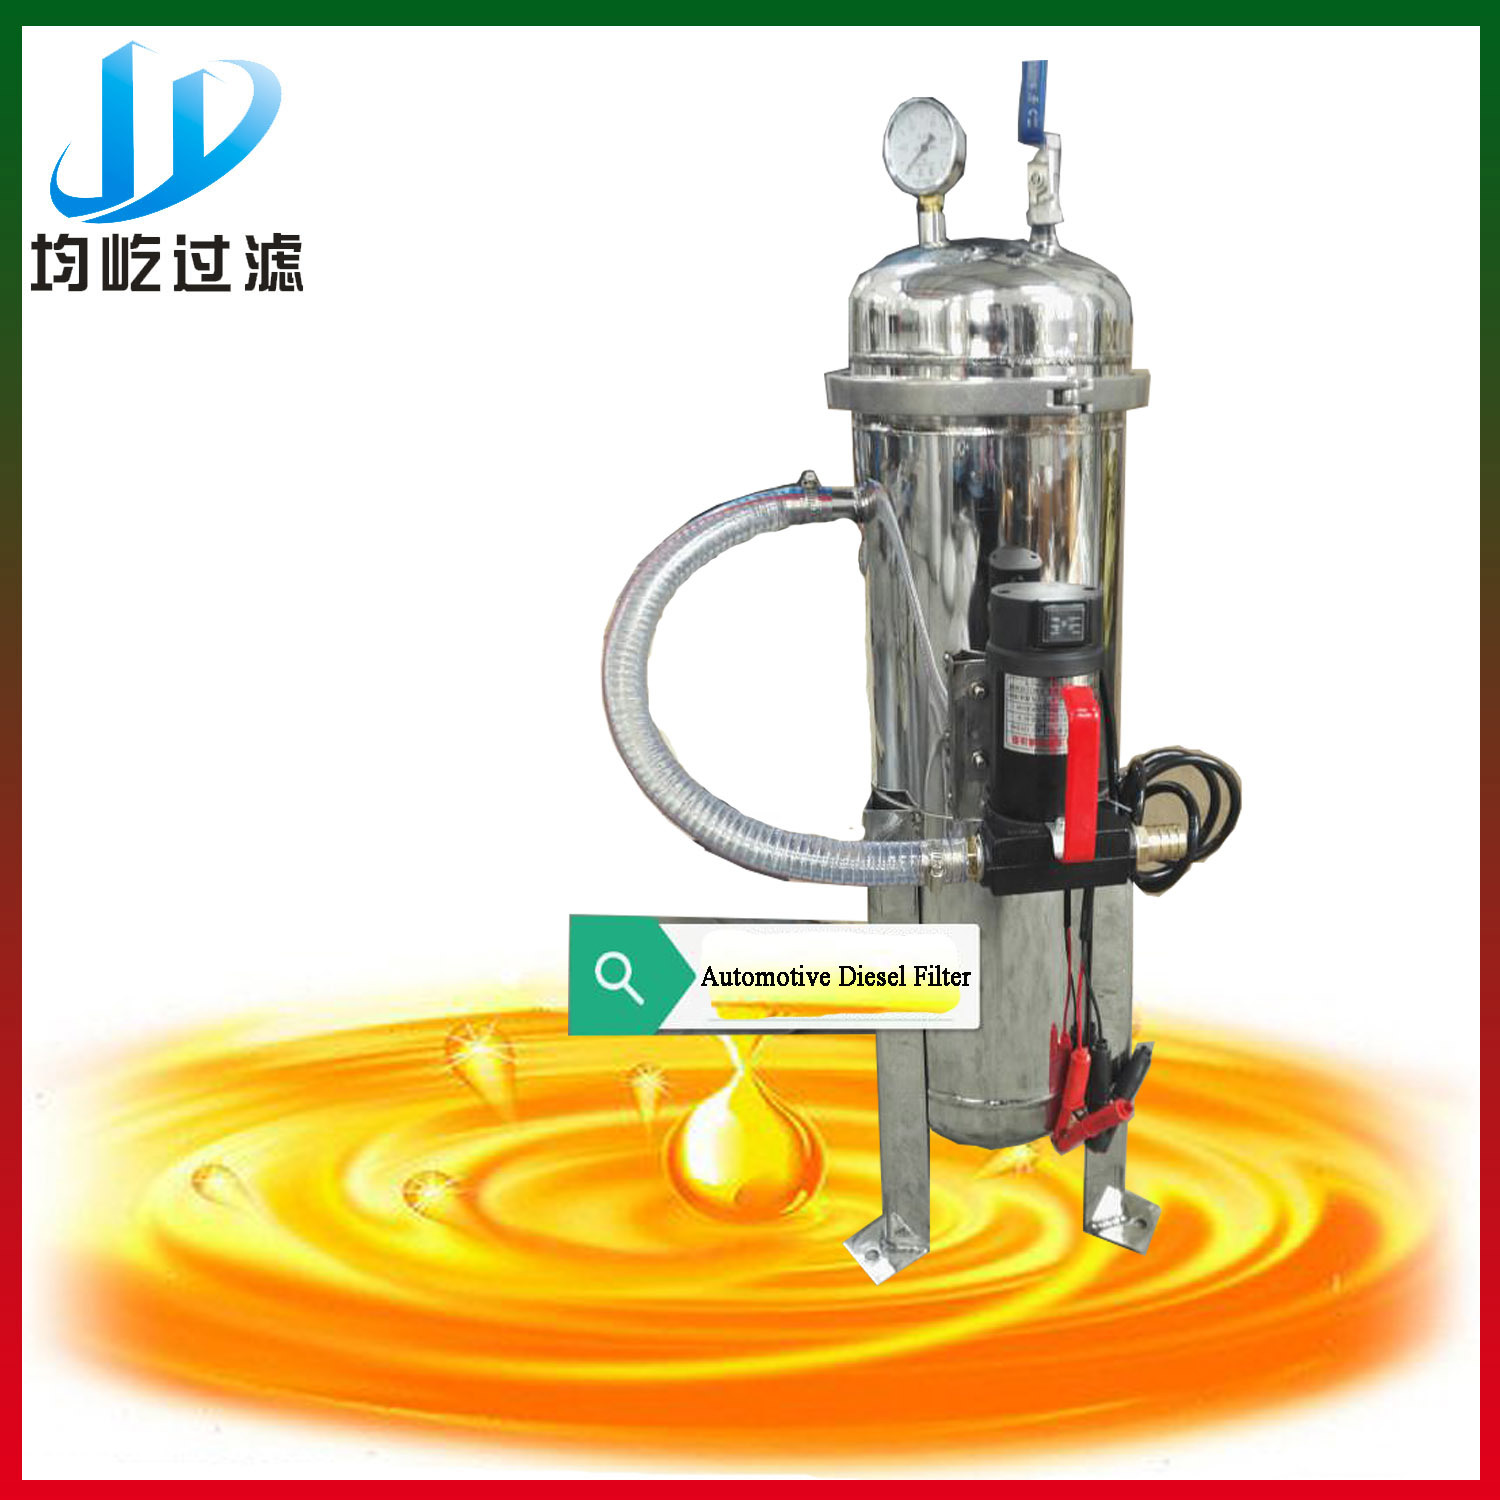 Most Efficient and Economic Sea Oil Impurification Filter System